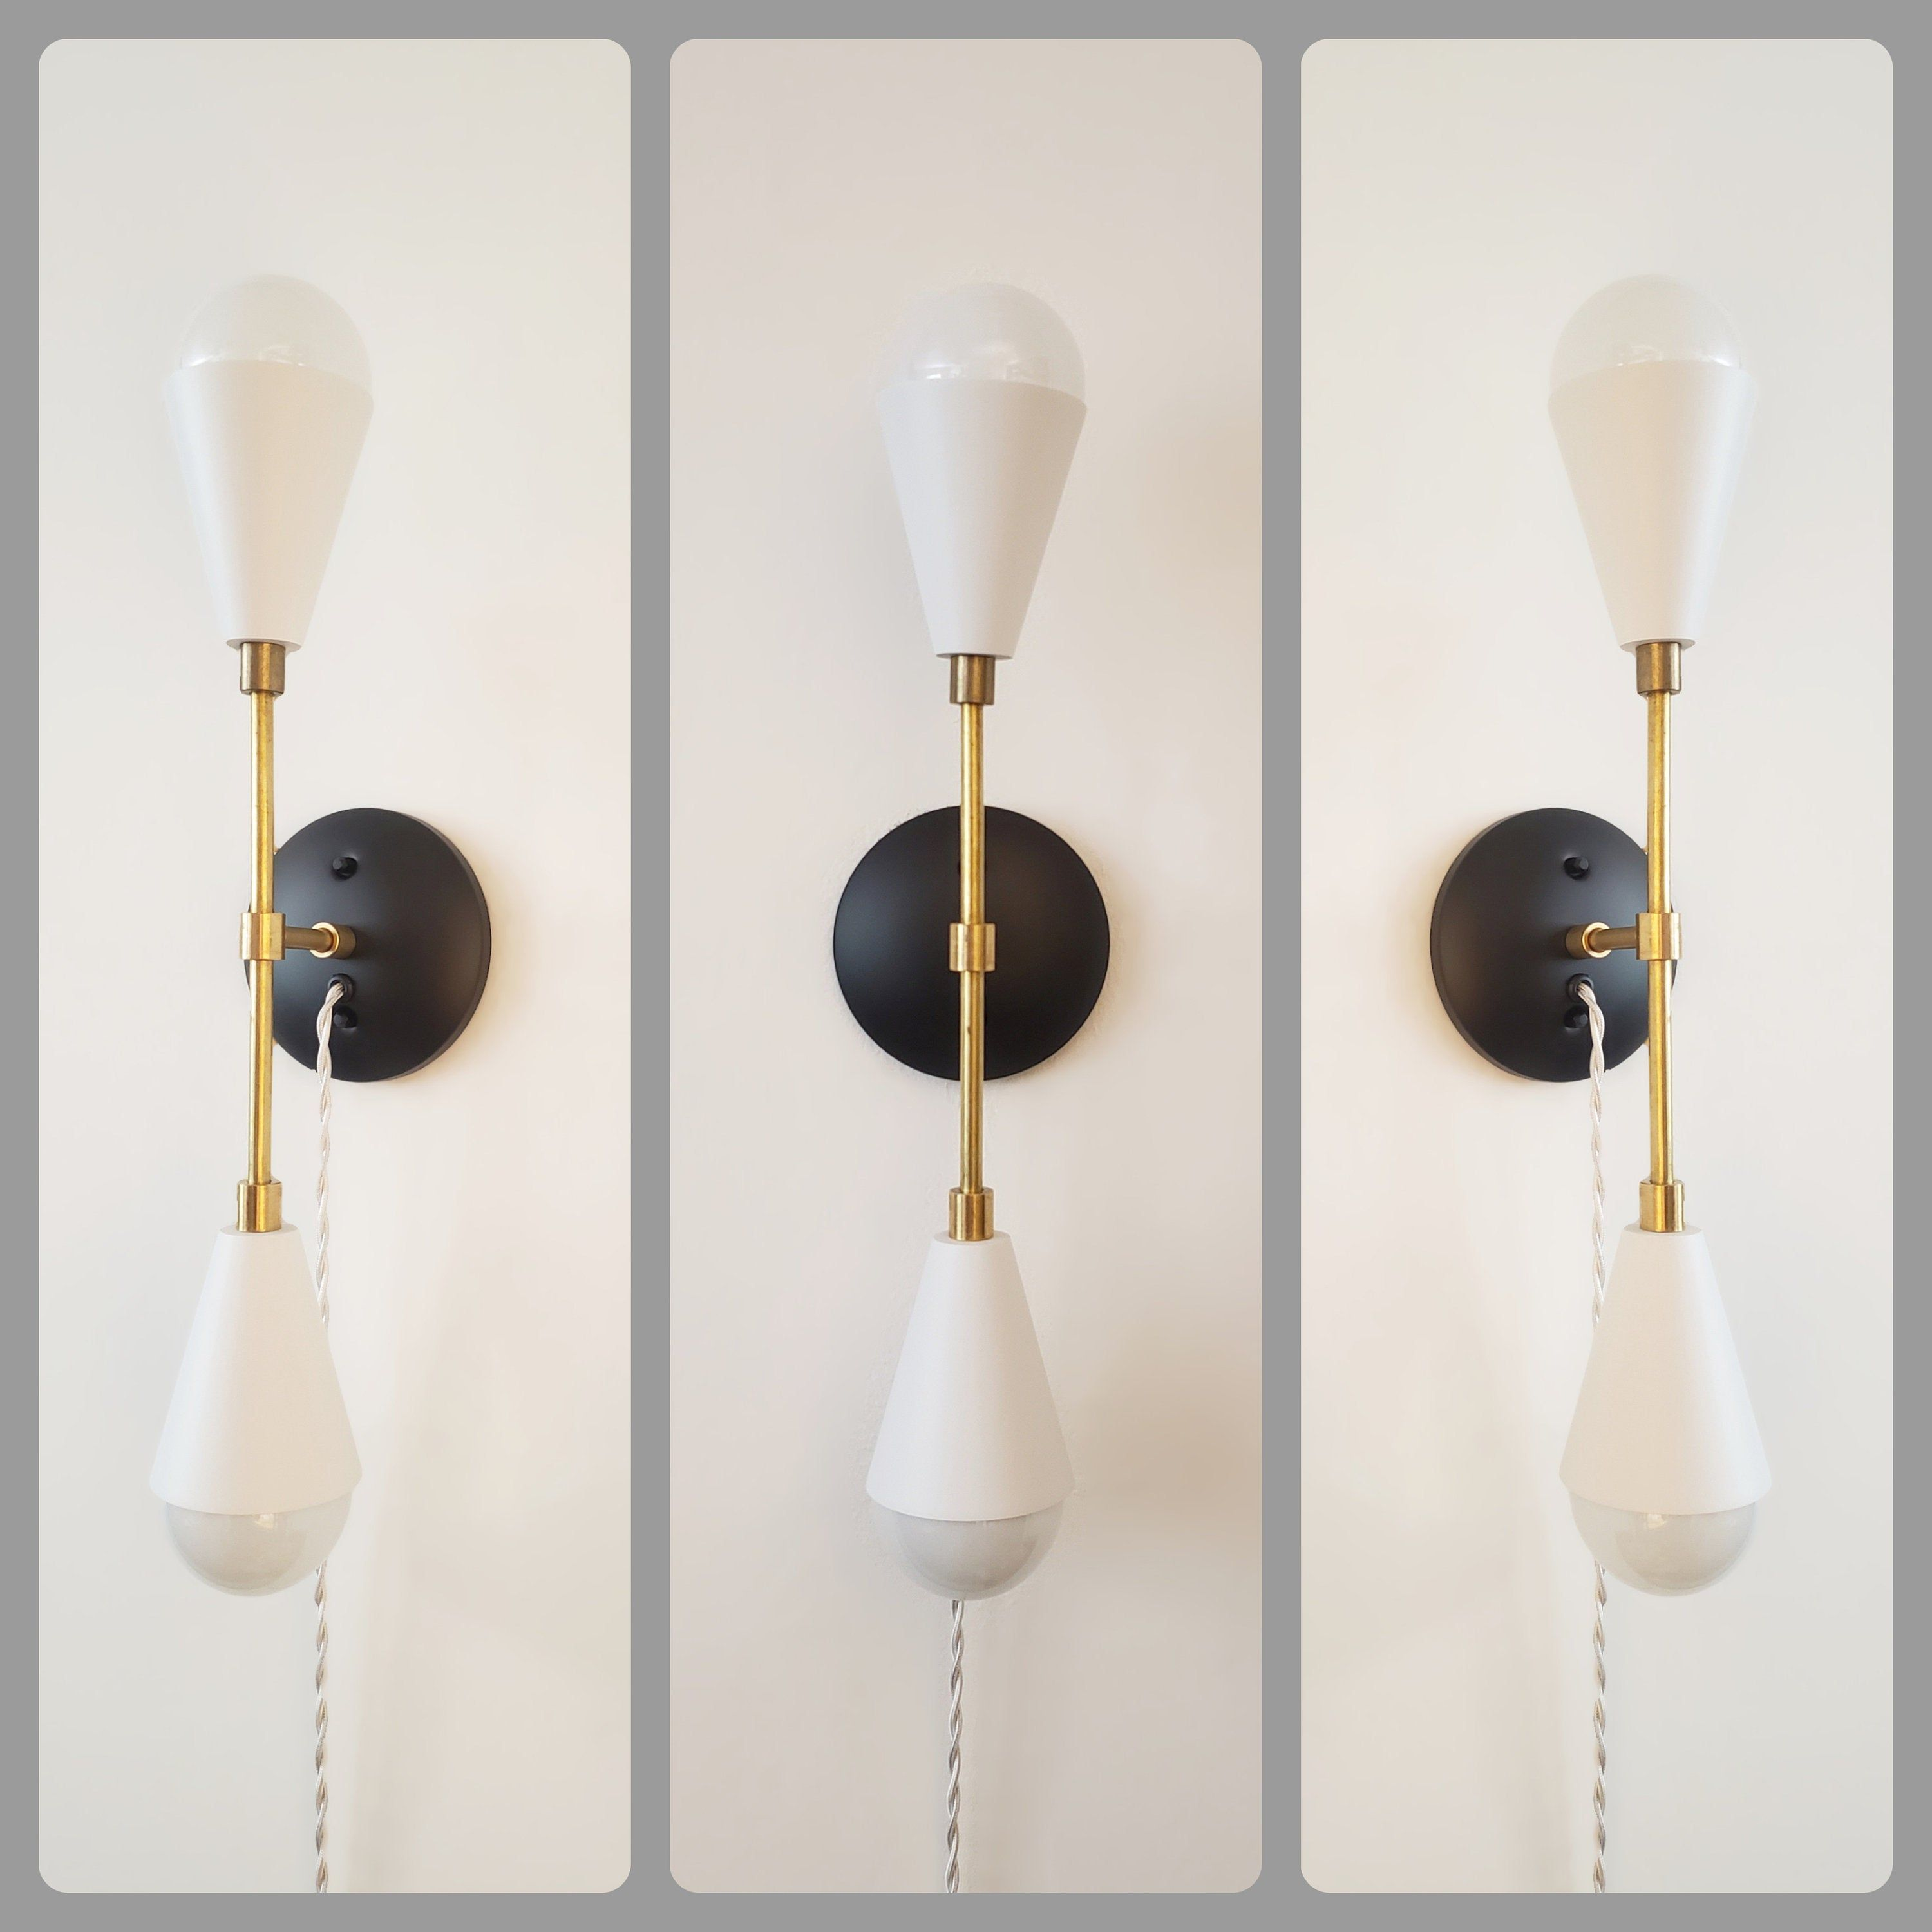 Plug In Modern Wall Sconce Mid Century Wall Light Black And White Loft Sconce Vanity Light Modern Bathroom Sconce Art Lighting Modern Wall Sconces Bathroom Sconces Sconces